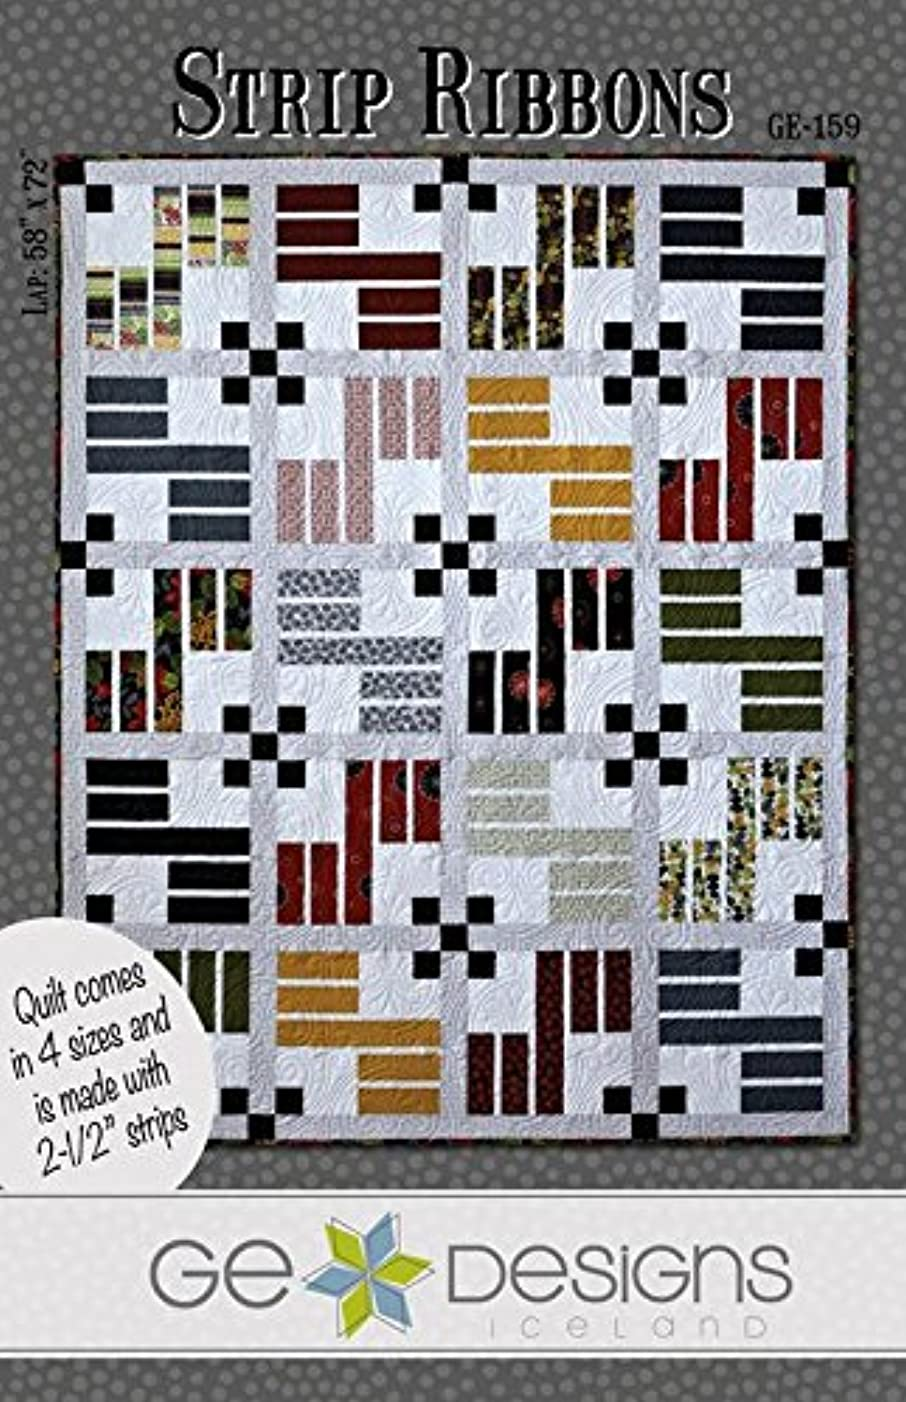 Strip Ribbons Quilt Pattern by GE Designs KGE159